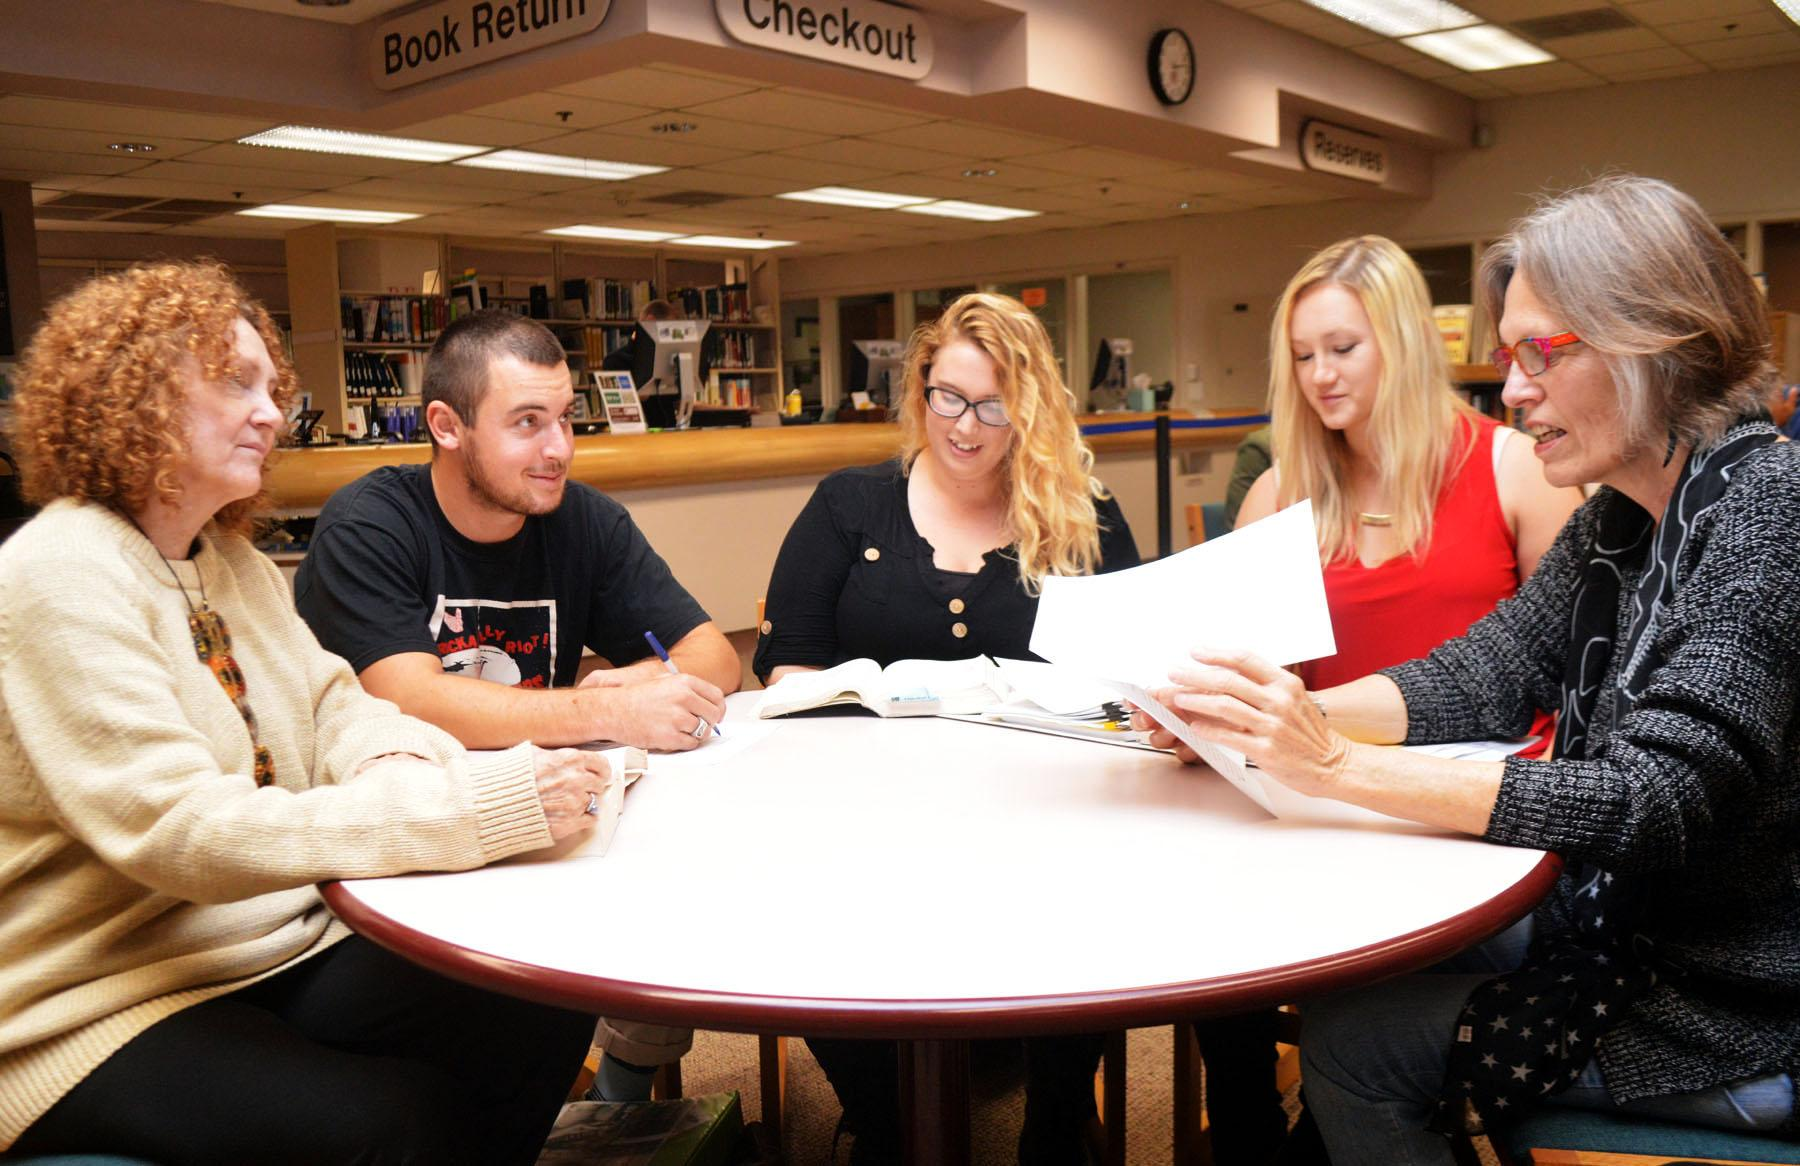 The editors for City College's online literary magazine 'Painted Cave,' from left, Kathryn Lubahn, Grady Olson, Danielle Anderson, Rachel Bower and Faculty Advisor Dr. Chella Courington gather for a meeting, Thursday, Nov. 19 in the Luria Library. 'Painted Cave' publishes bi-annually, and was awarded last month for the best online student-run literary journal of California community colleges.